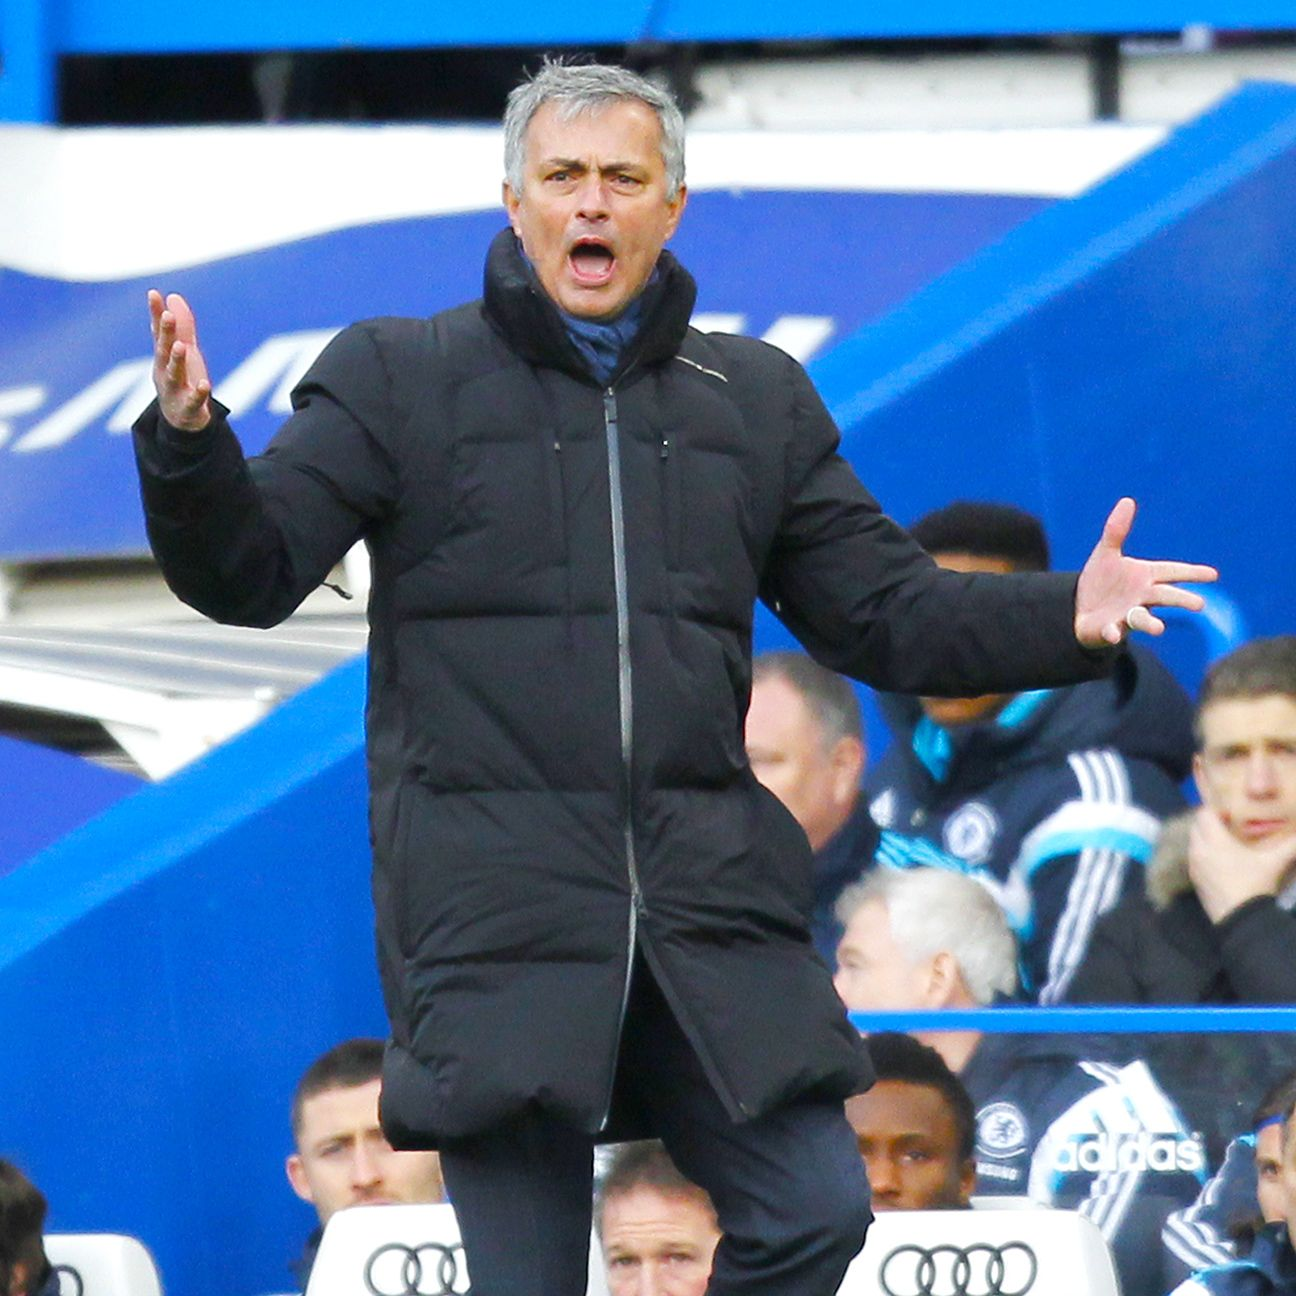 Chelsea fans should not expect much squad rotation from manager Jose Mourinho in upcoming matches, despite a congested fixtures list.